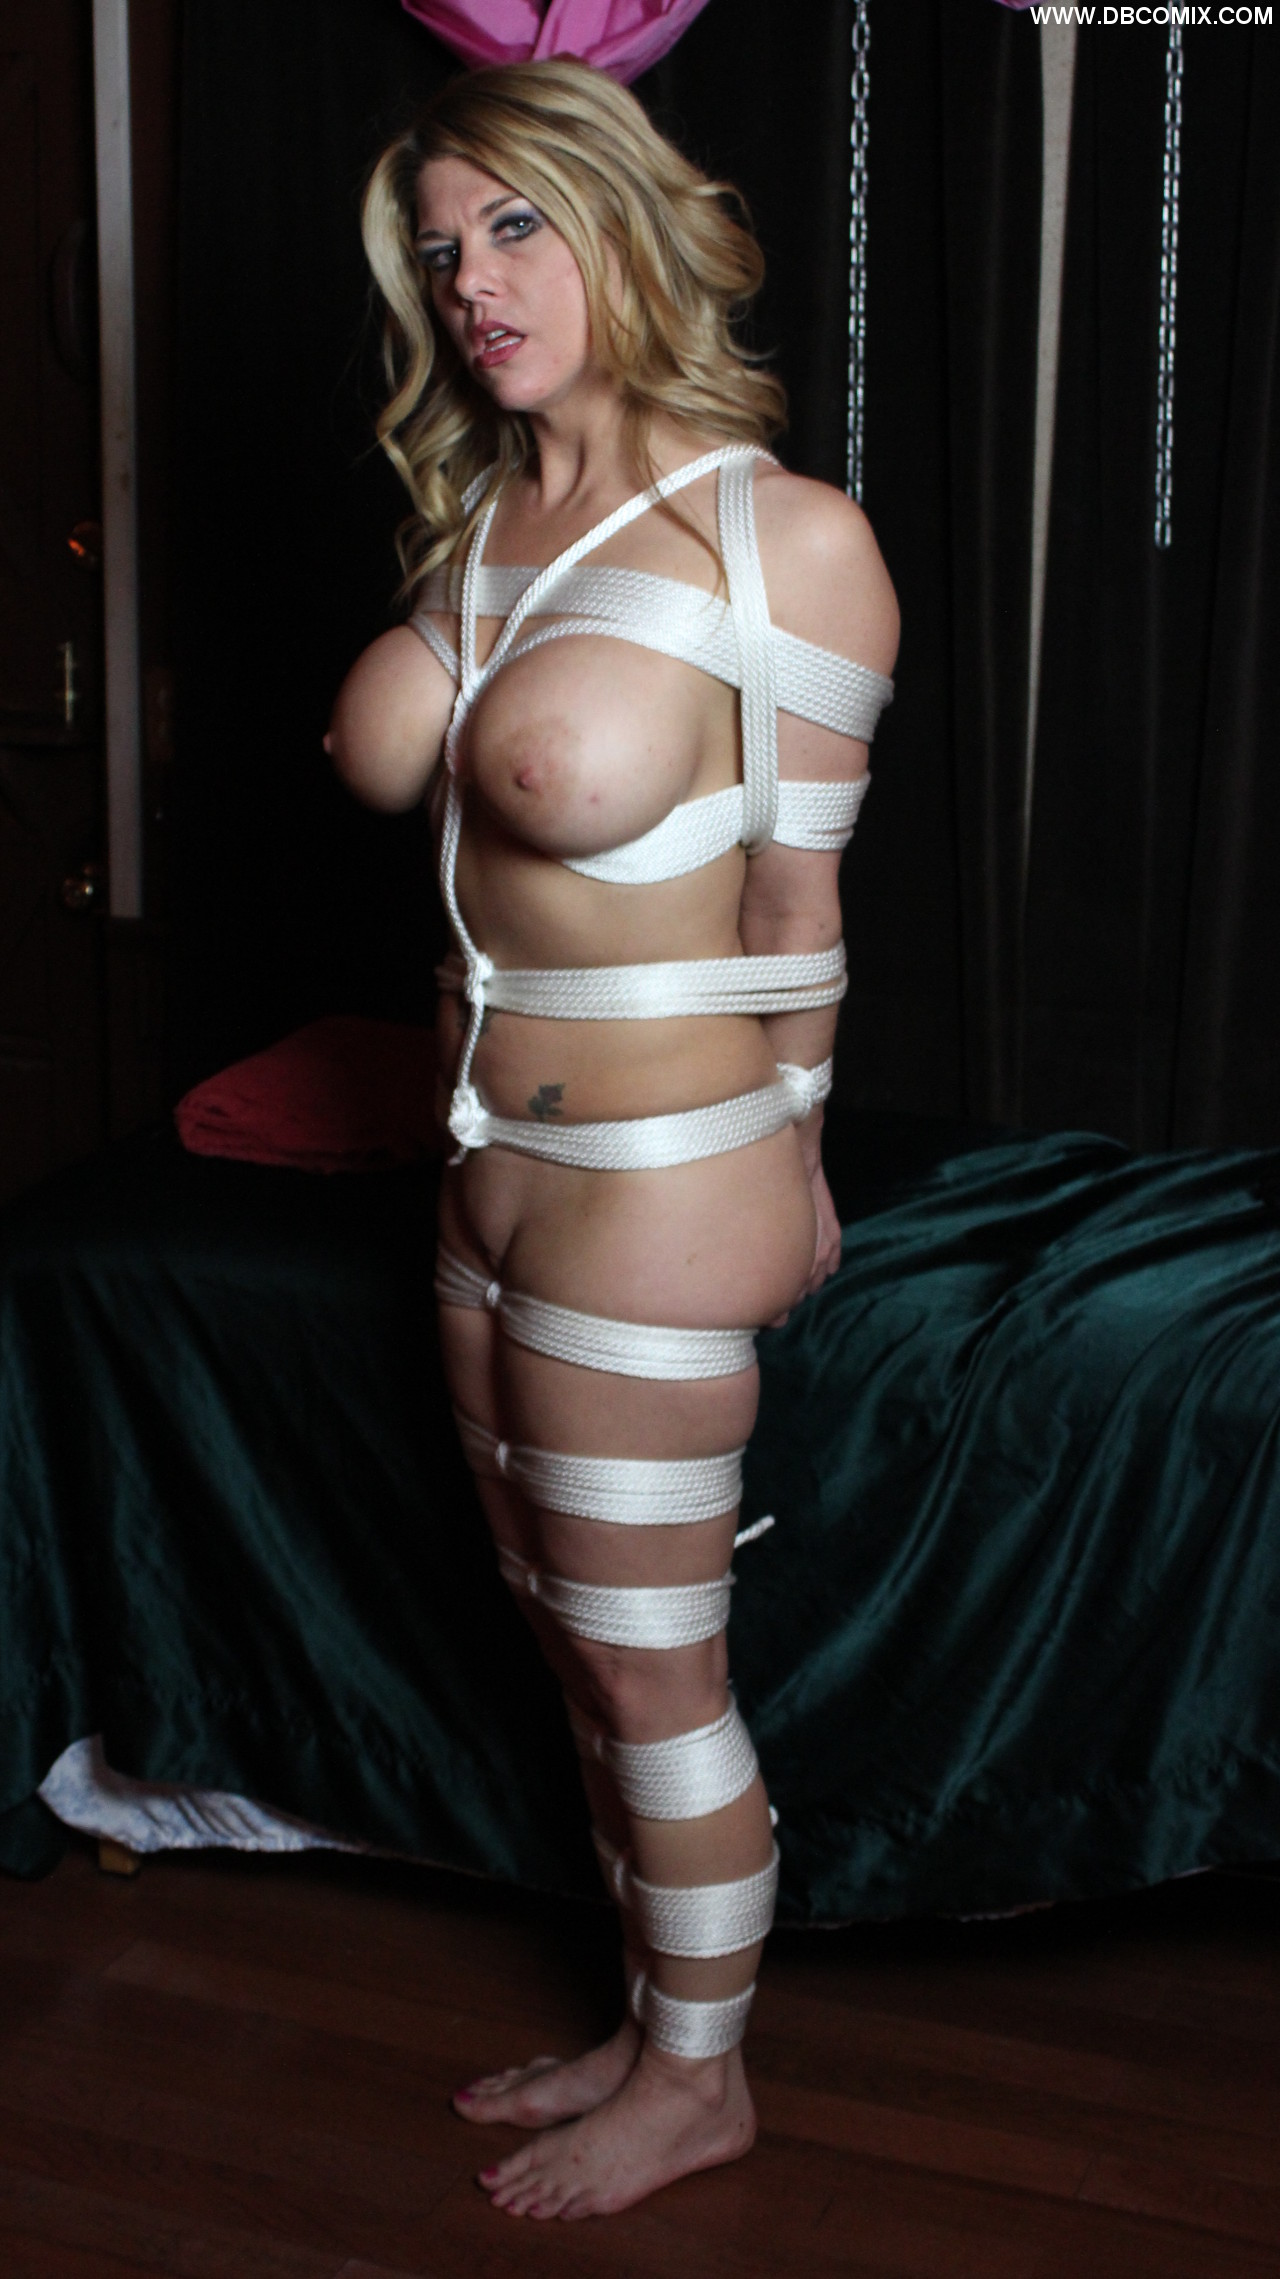 escape artist dressed in ropes